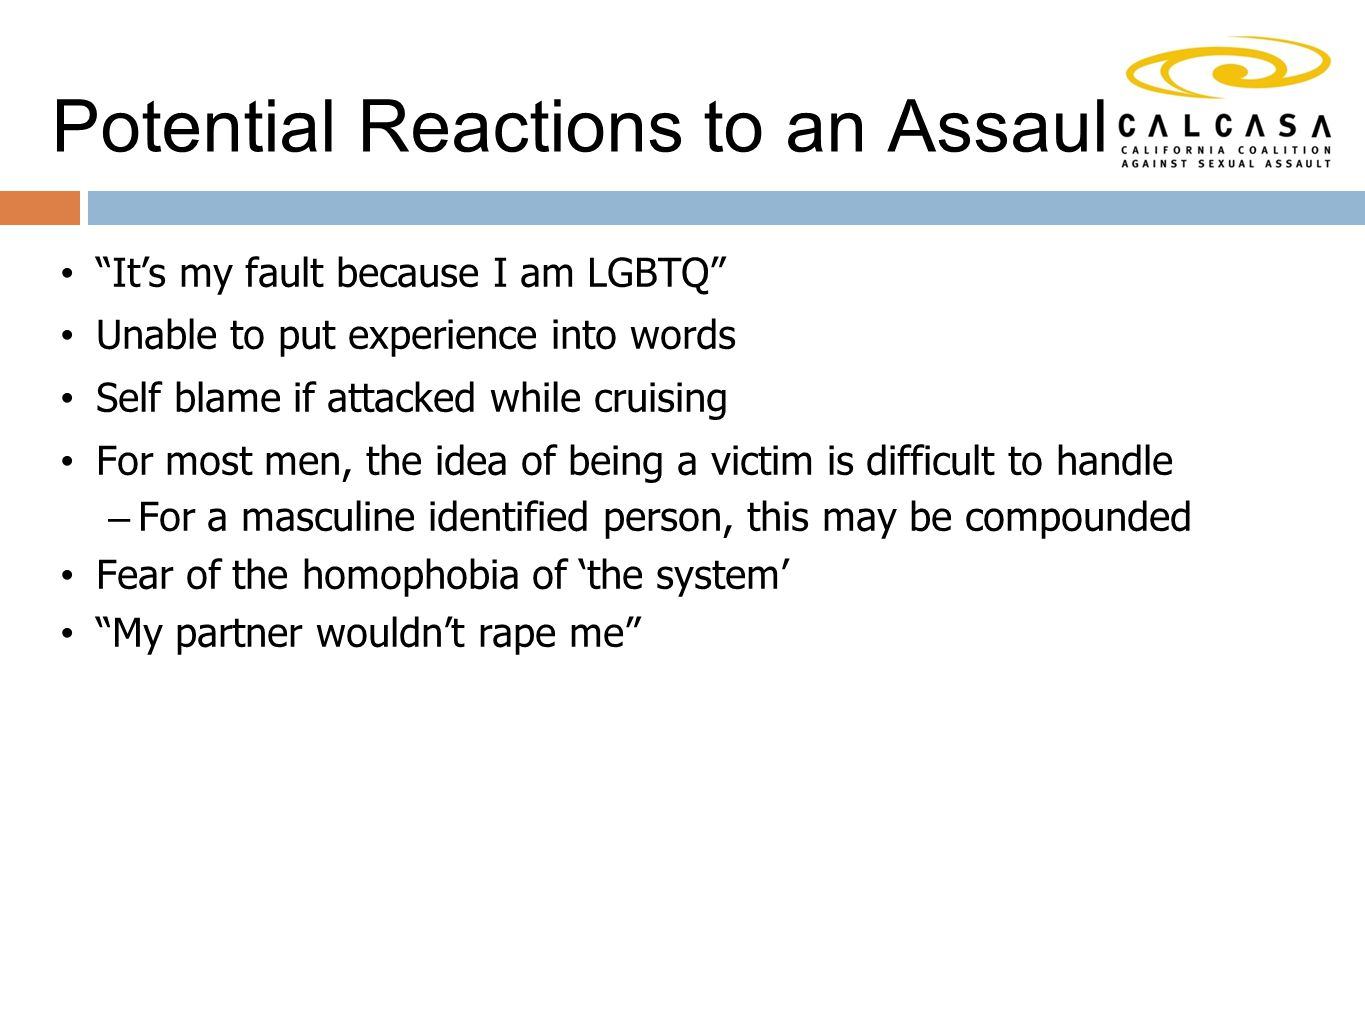 Potential Reactions to an Assault It's my fault because I am LGBTQ Unable to put experience into words Self blame if attacked while cruising For most men, the idea of being a victim is difficult to handle – For a masculine identified person, this may be compounded Fear of the homophobia of 'the system' My partner wouldn't rape me